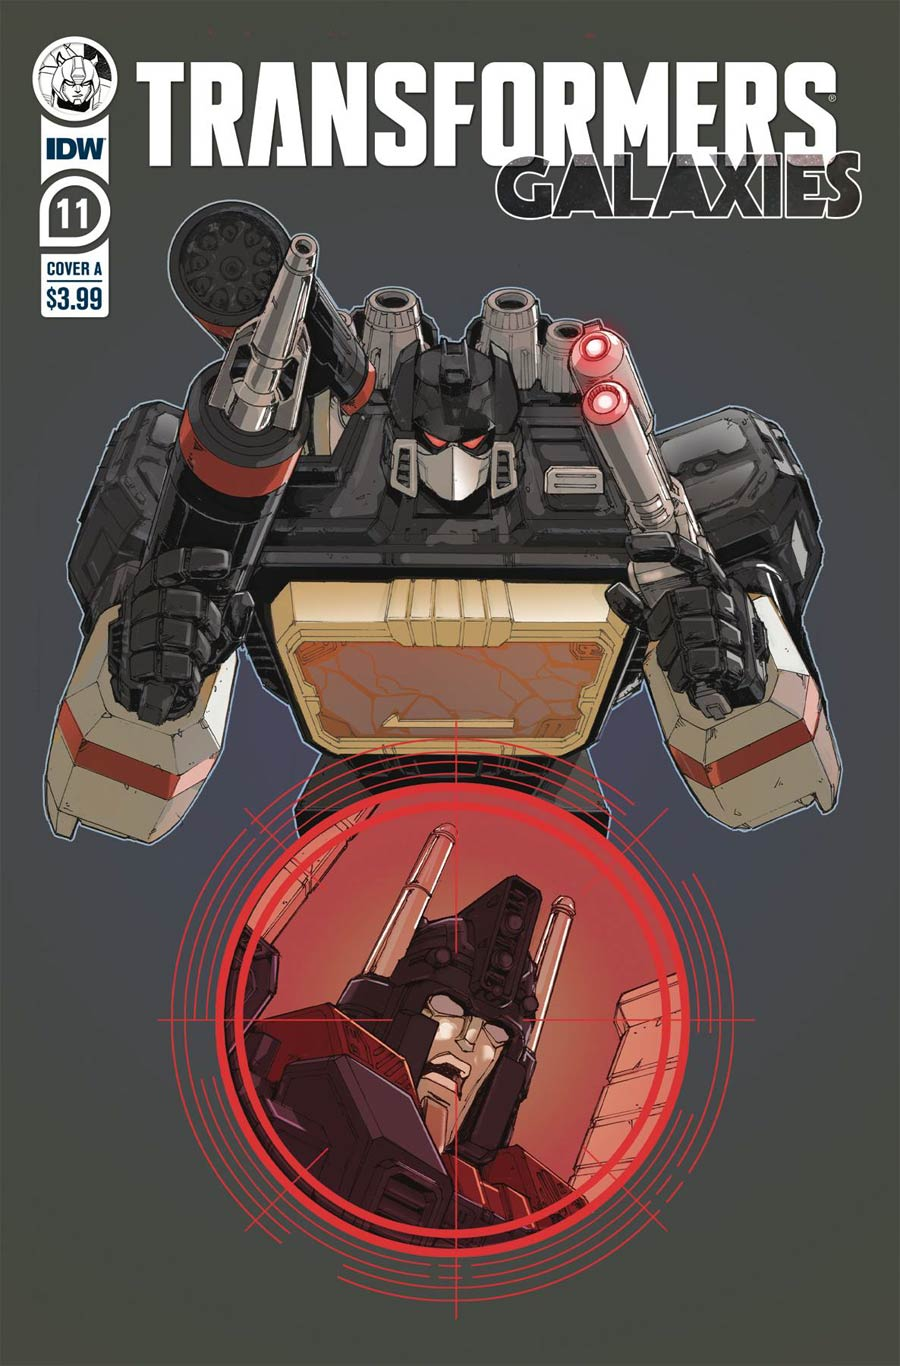 Transformers Galaxies #11 Cover A Regular Andrew Griffith Cover